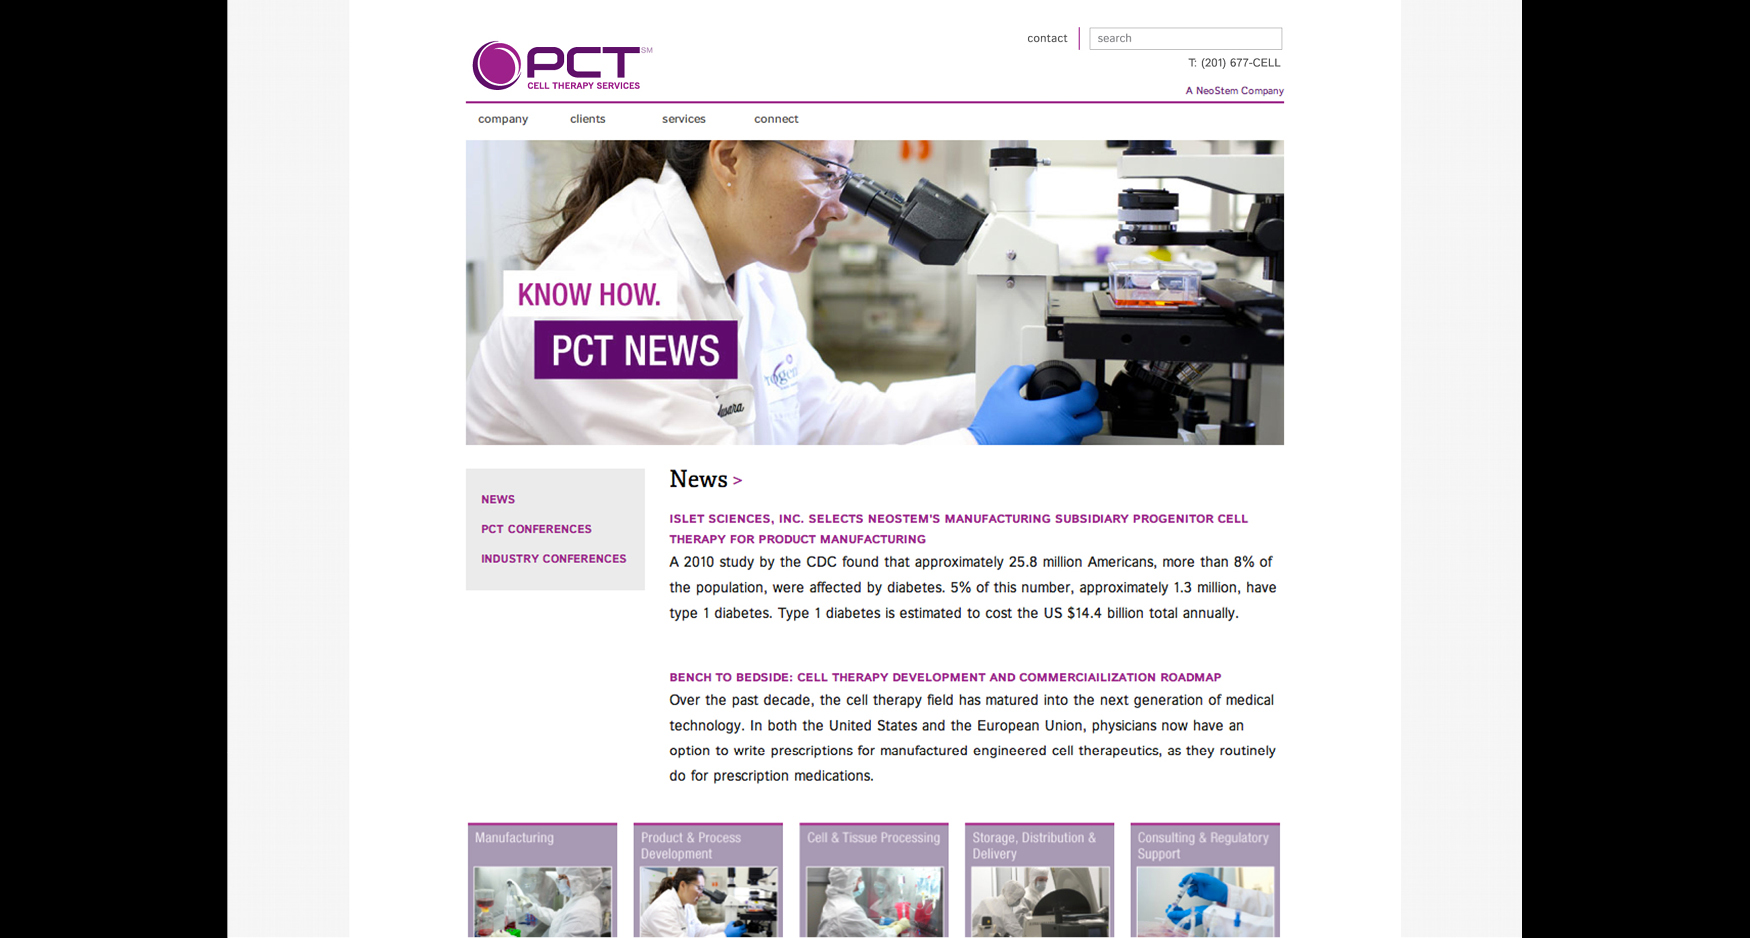 BP Large Website Images12 - PCT CELL THERAPY - CORPORATE WEBSITE